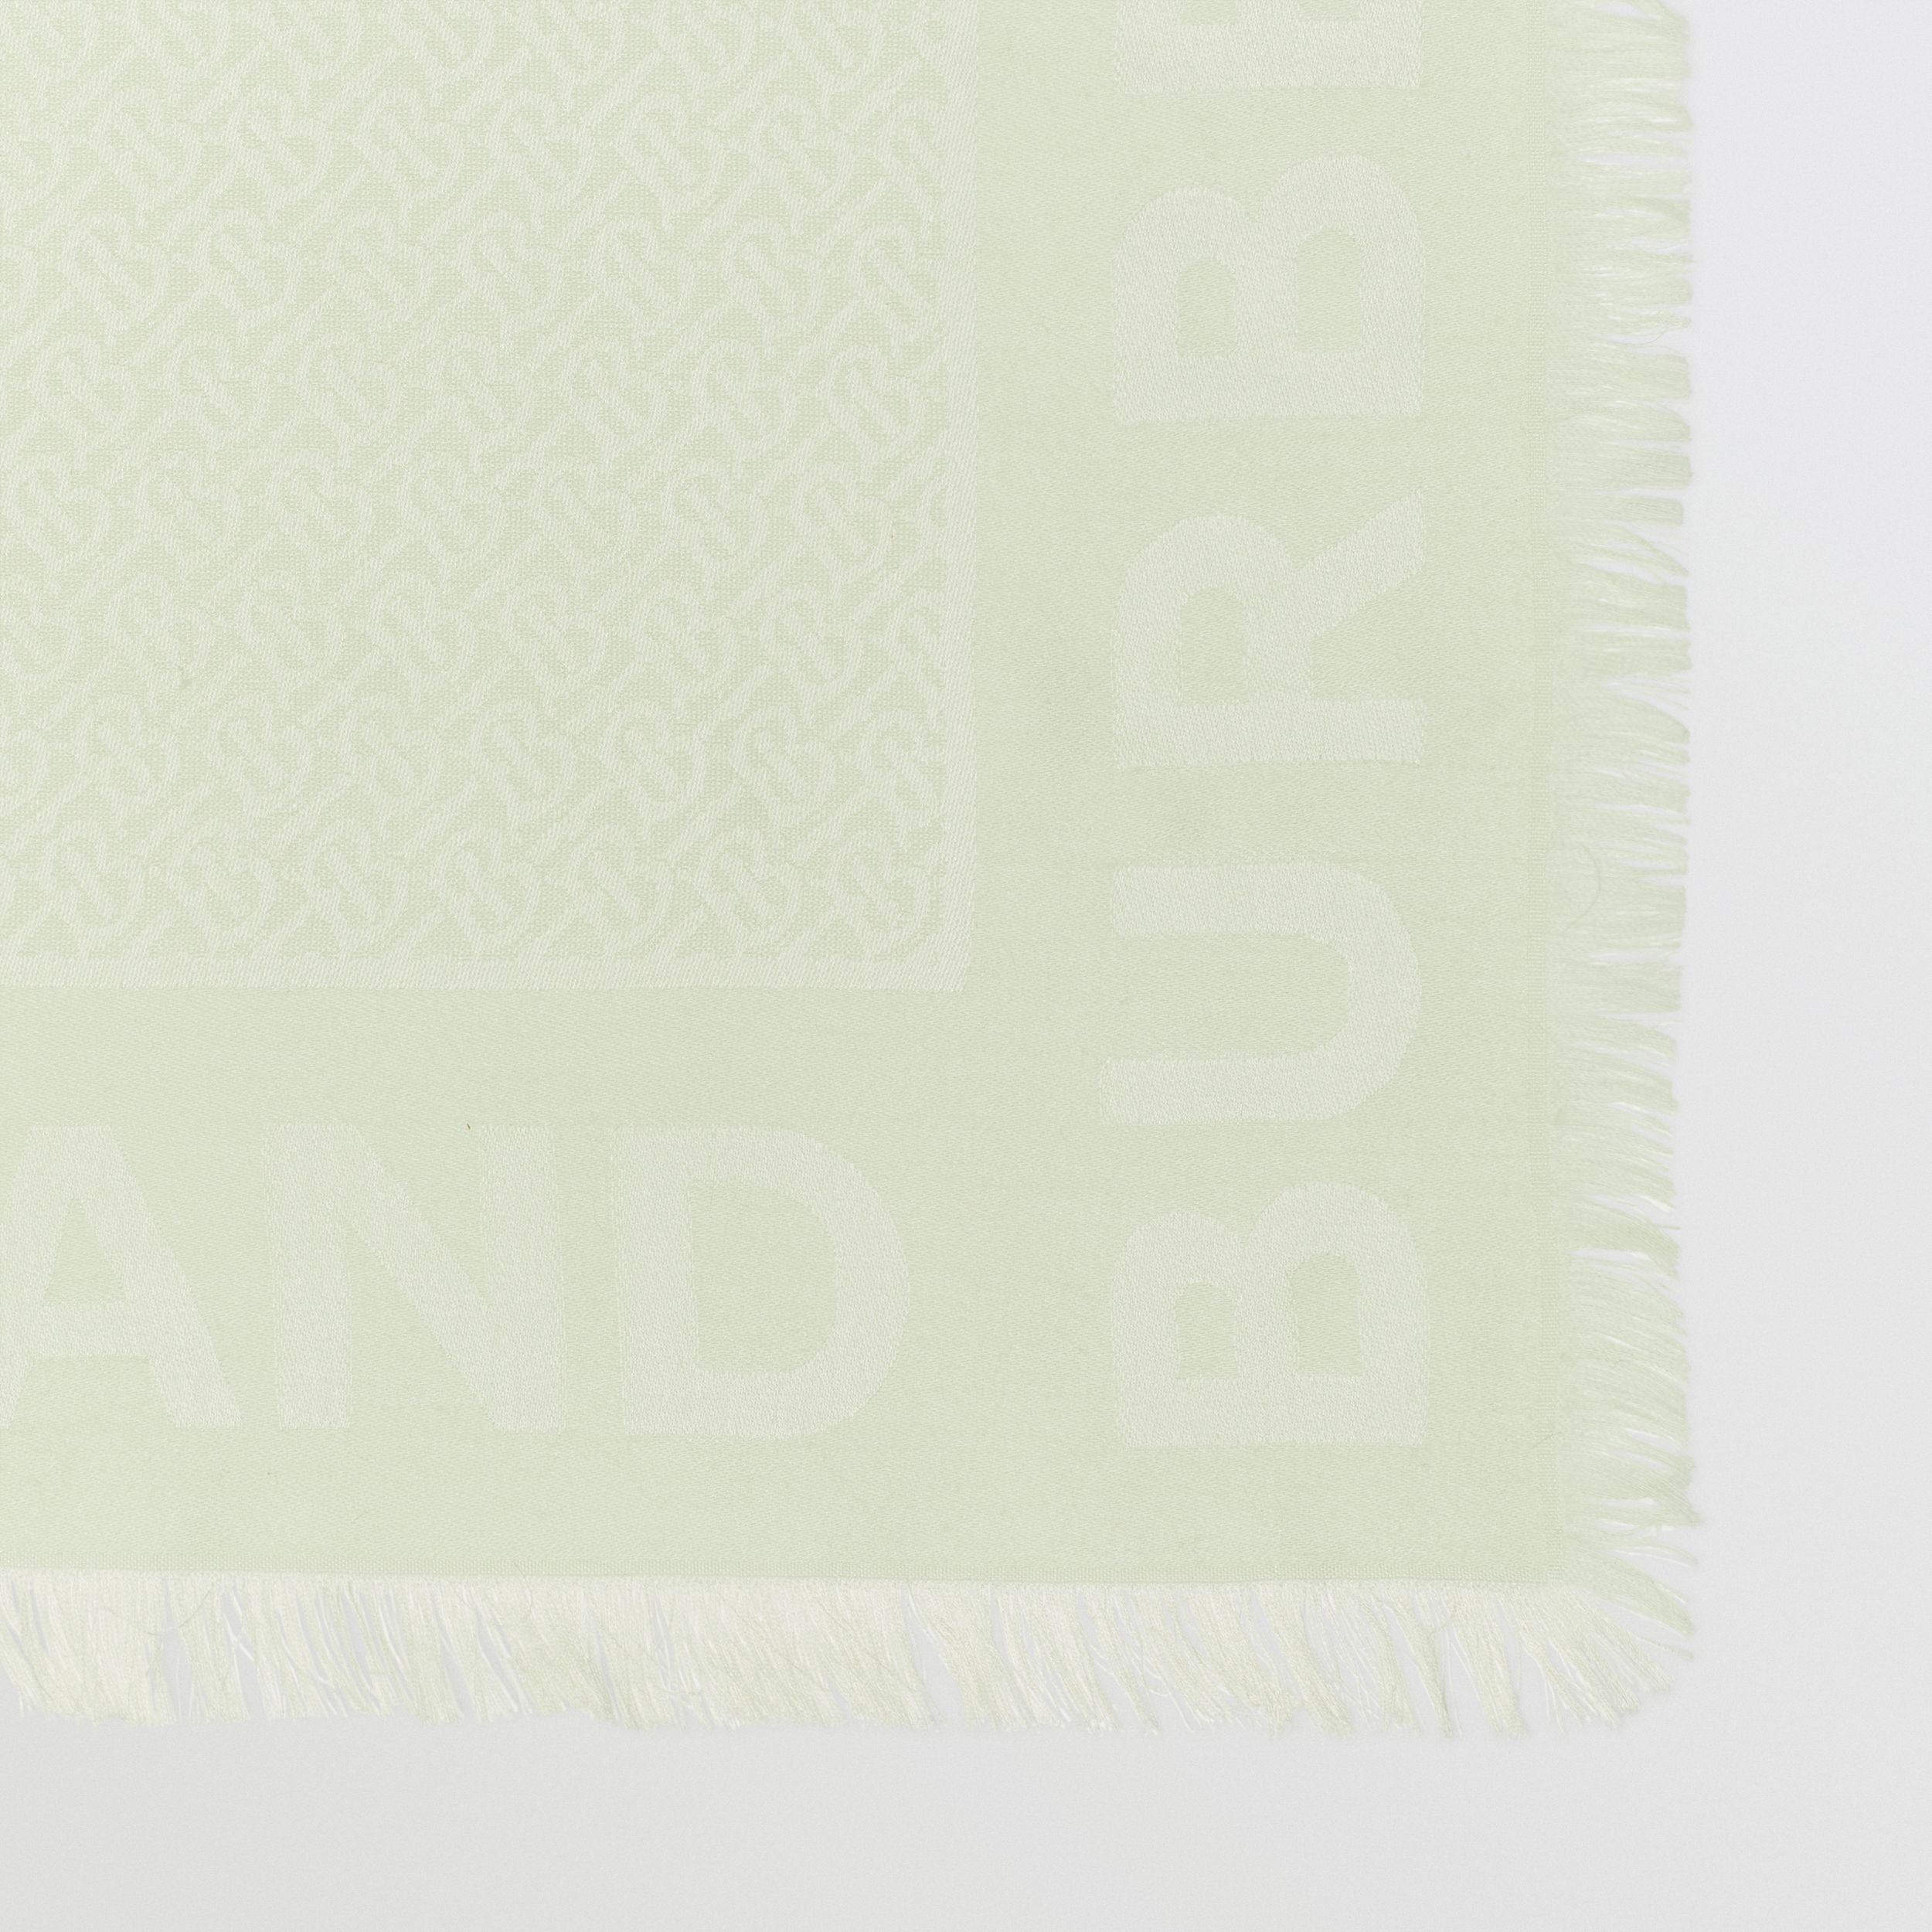 Monogram Silk Wool Jacquard Large Square Scarf in Pistachio | Burberry - 2